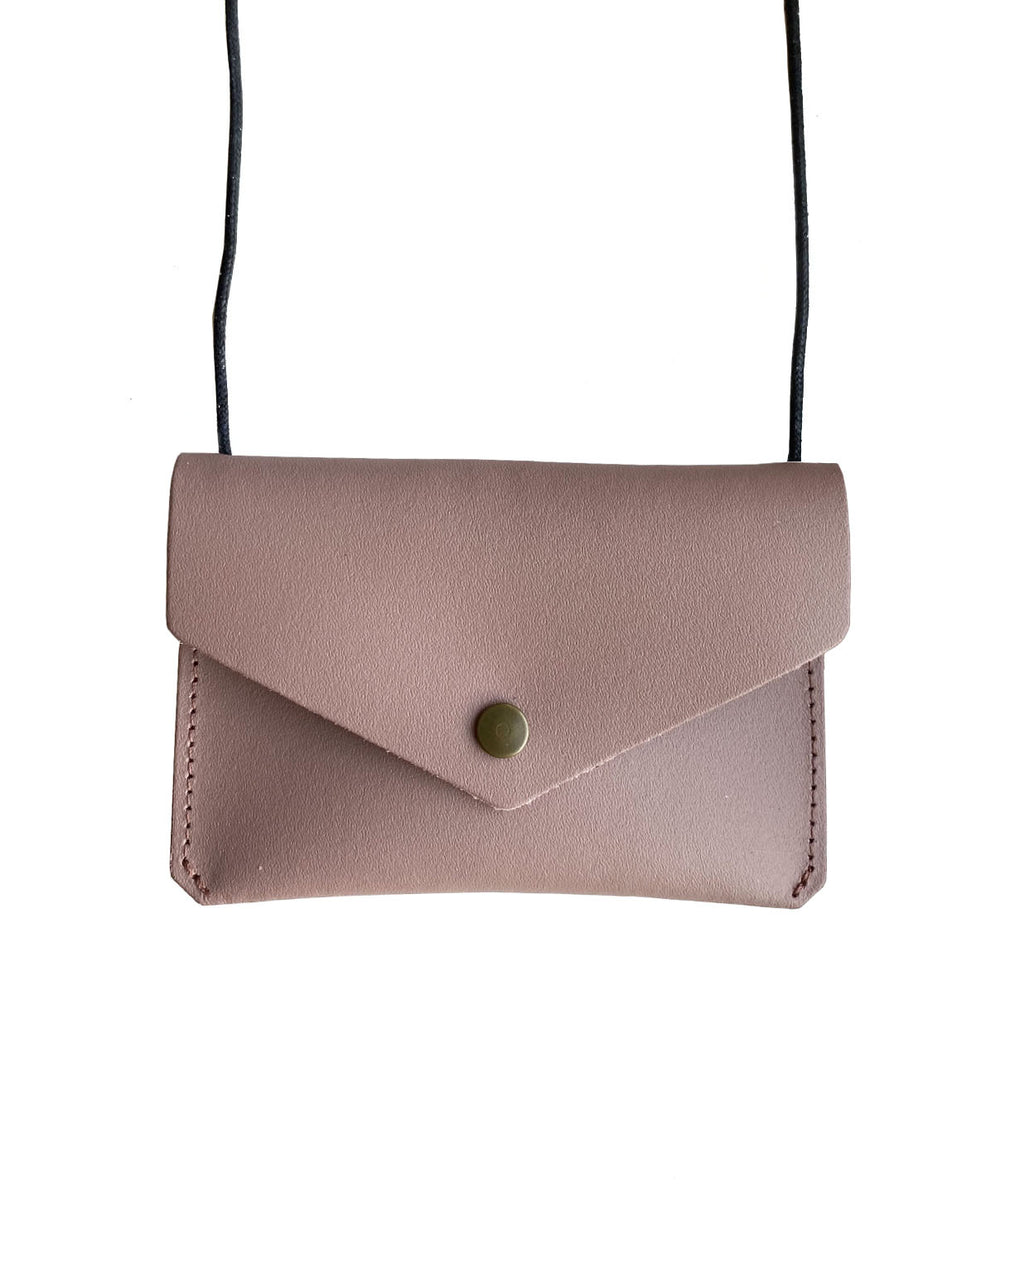 Leather envelope purse - dusty pink